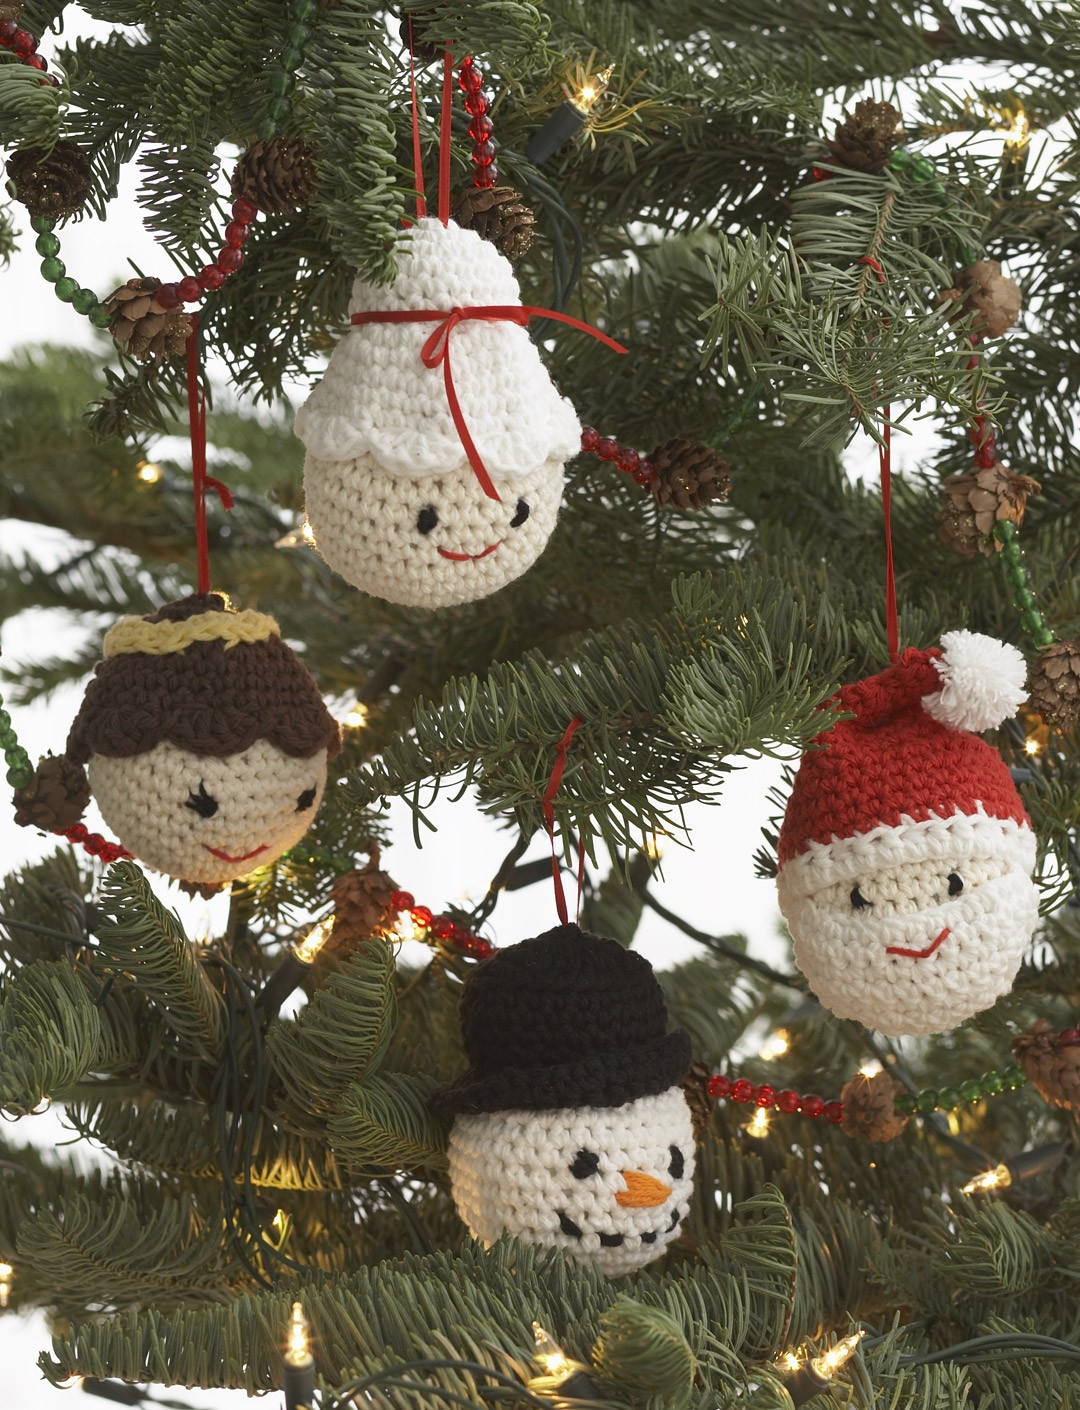 Amigurumi Ornaments